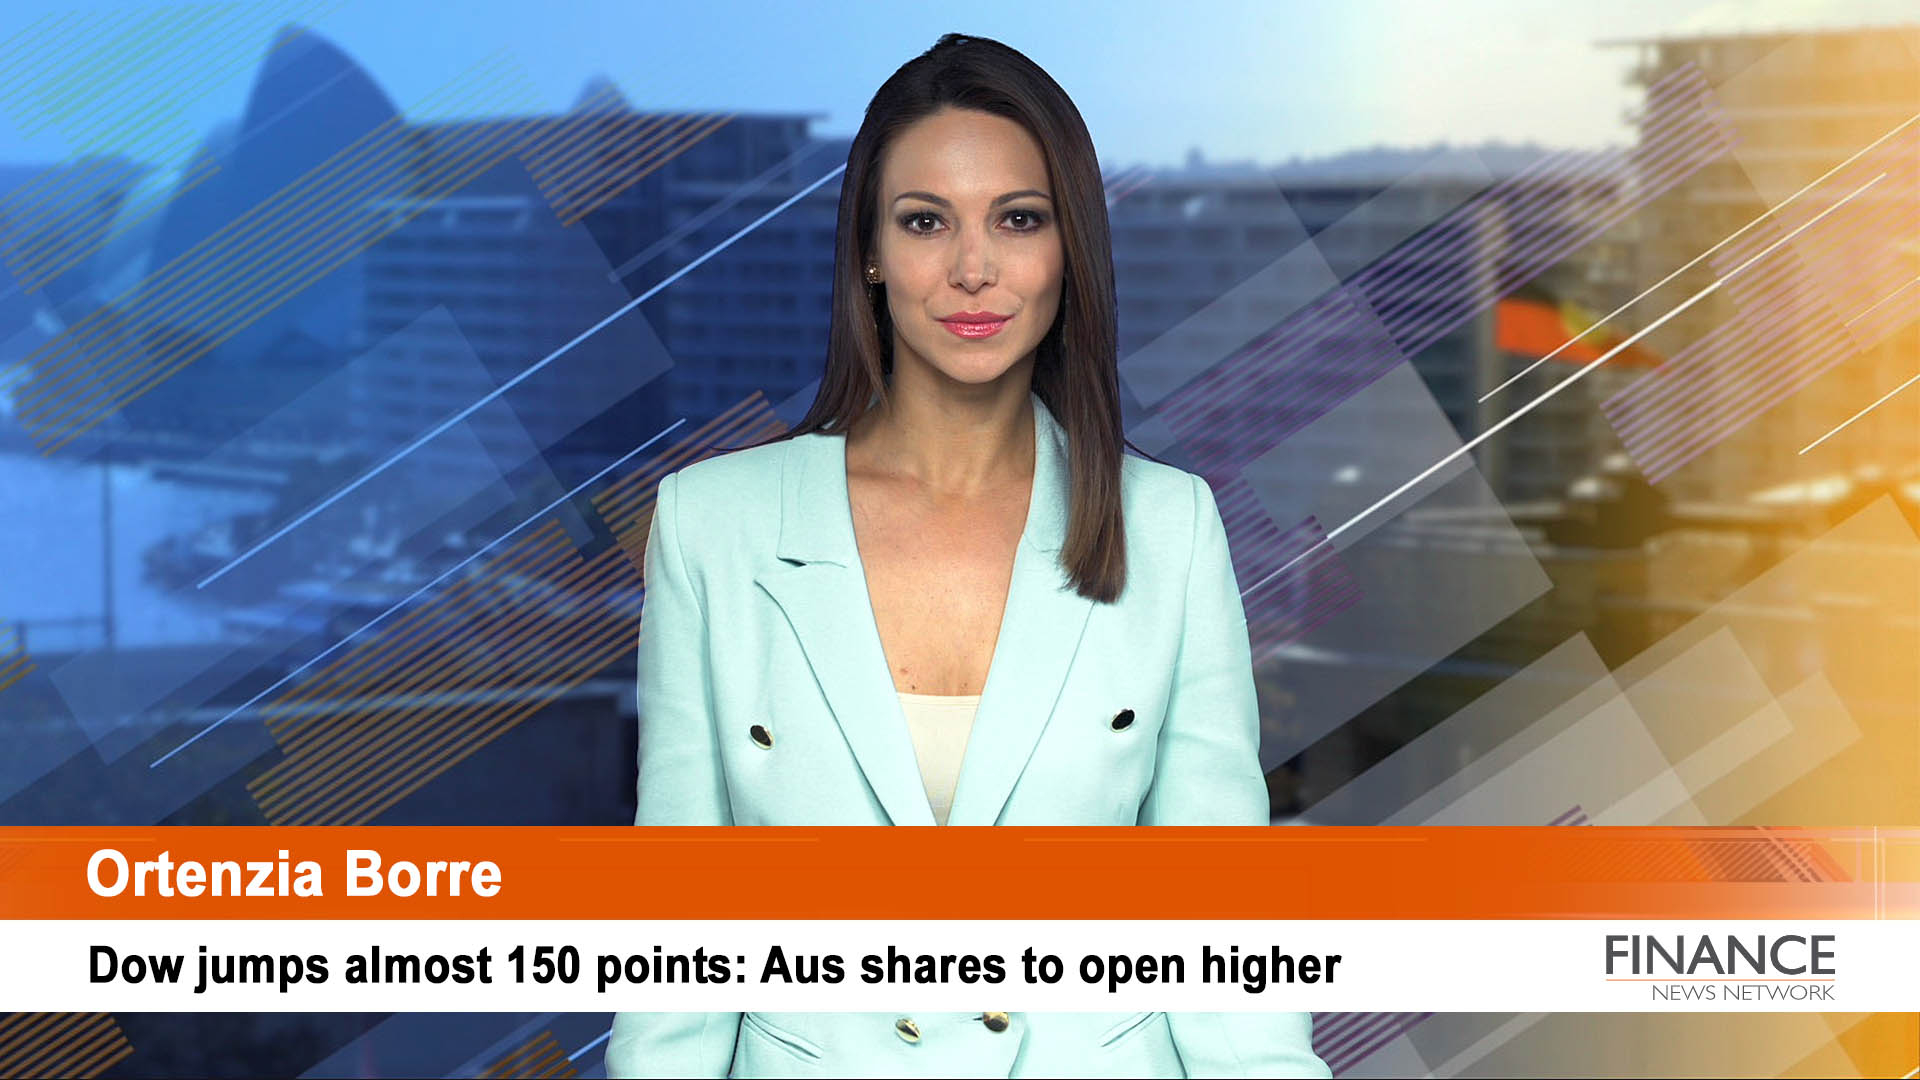 Dow jumps almost 150 points: Aus shares to open higher